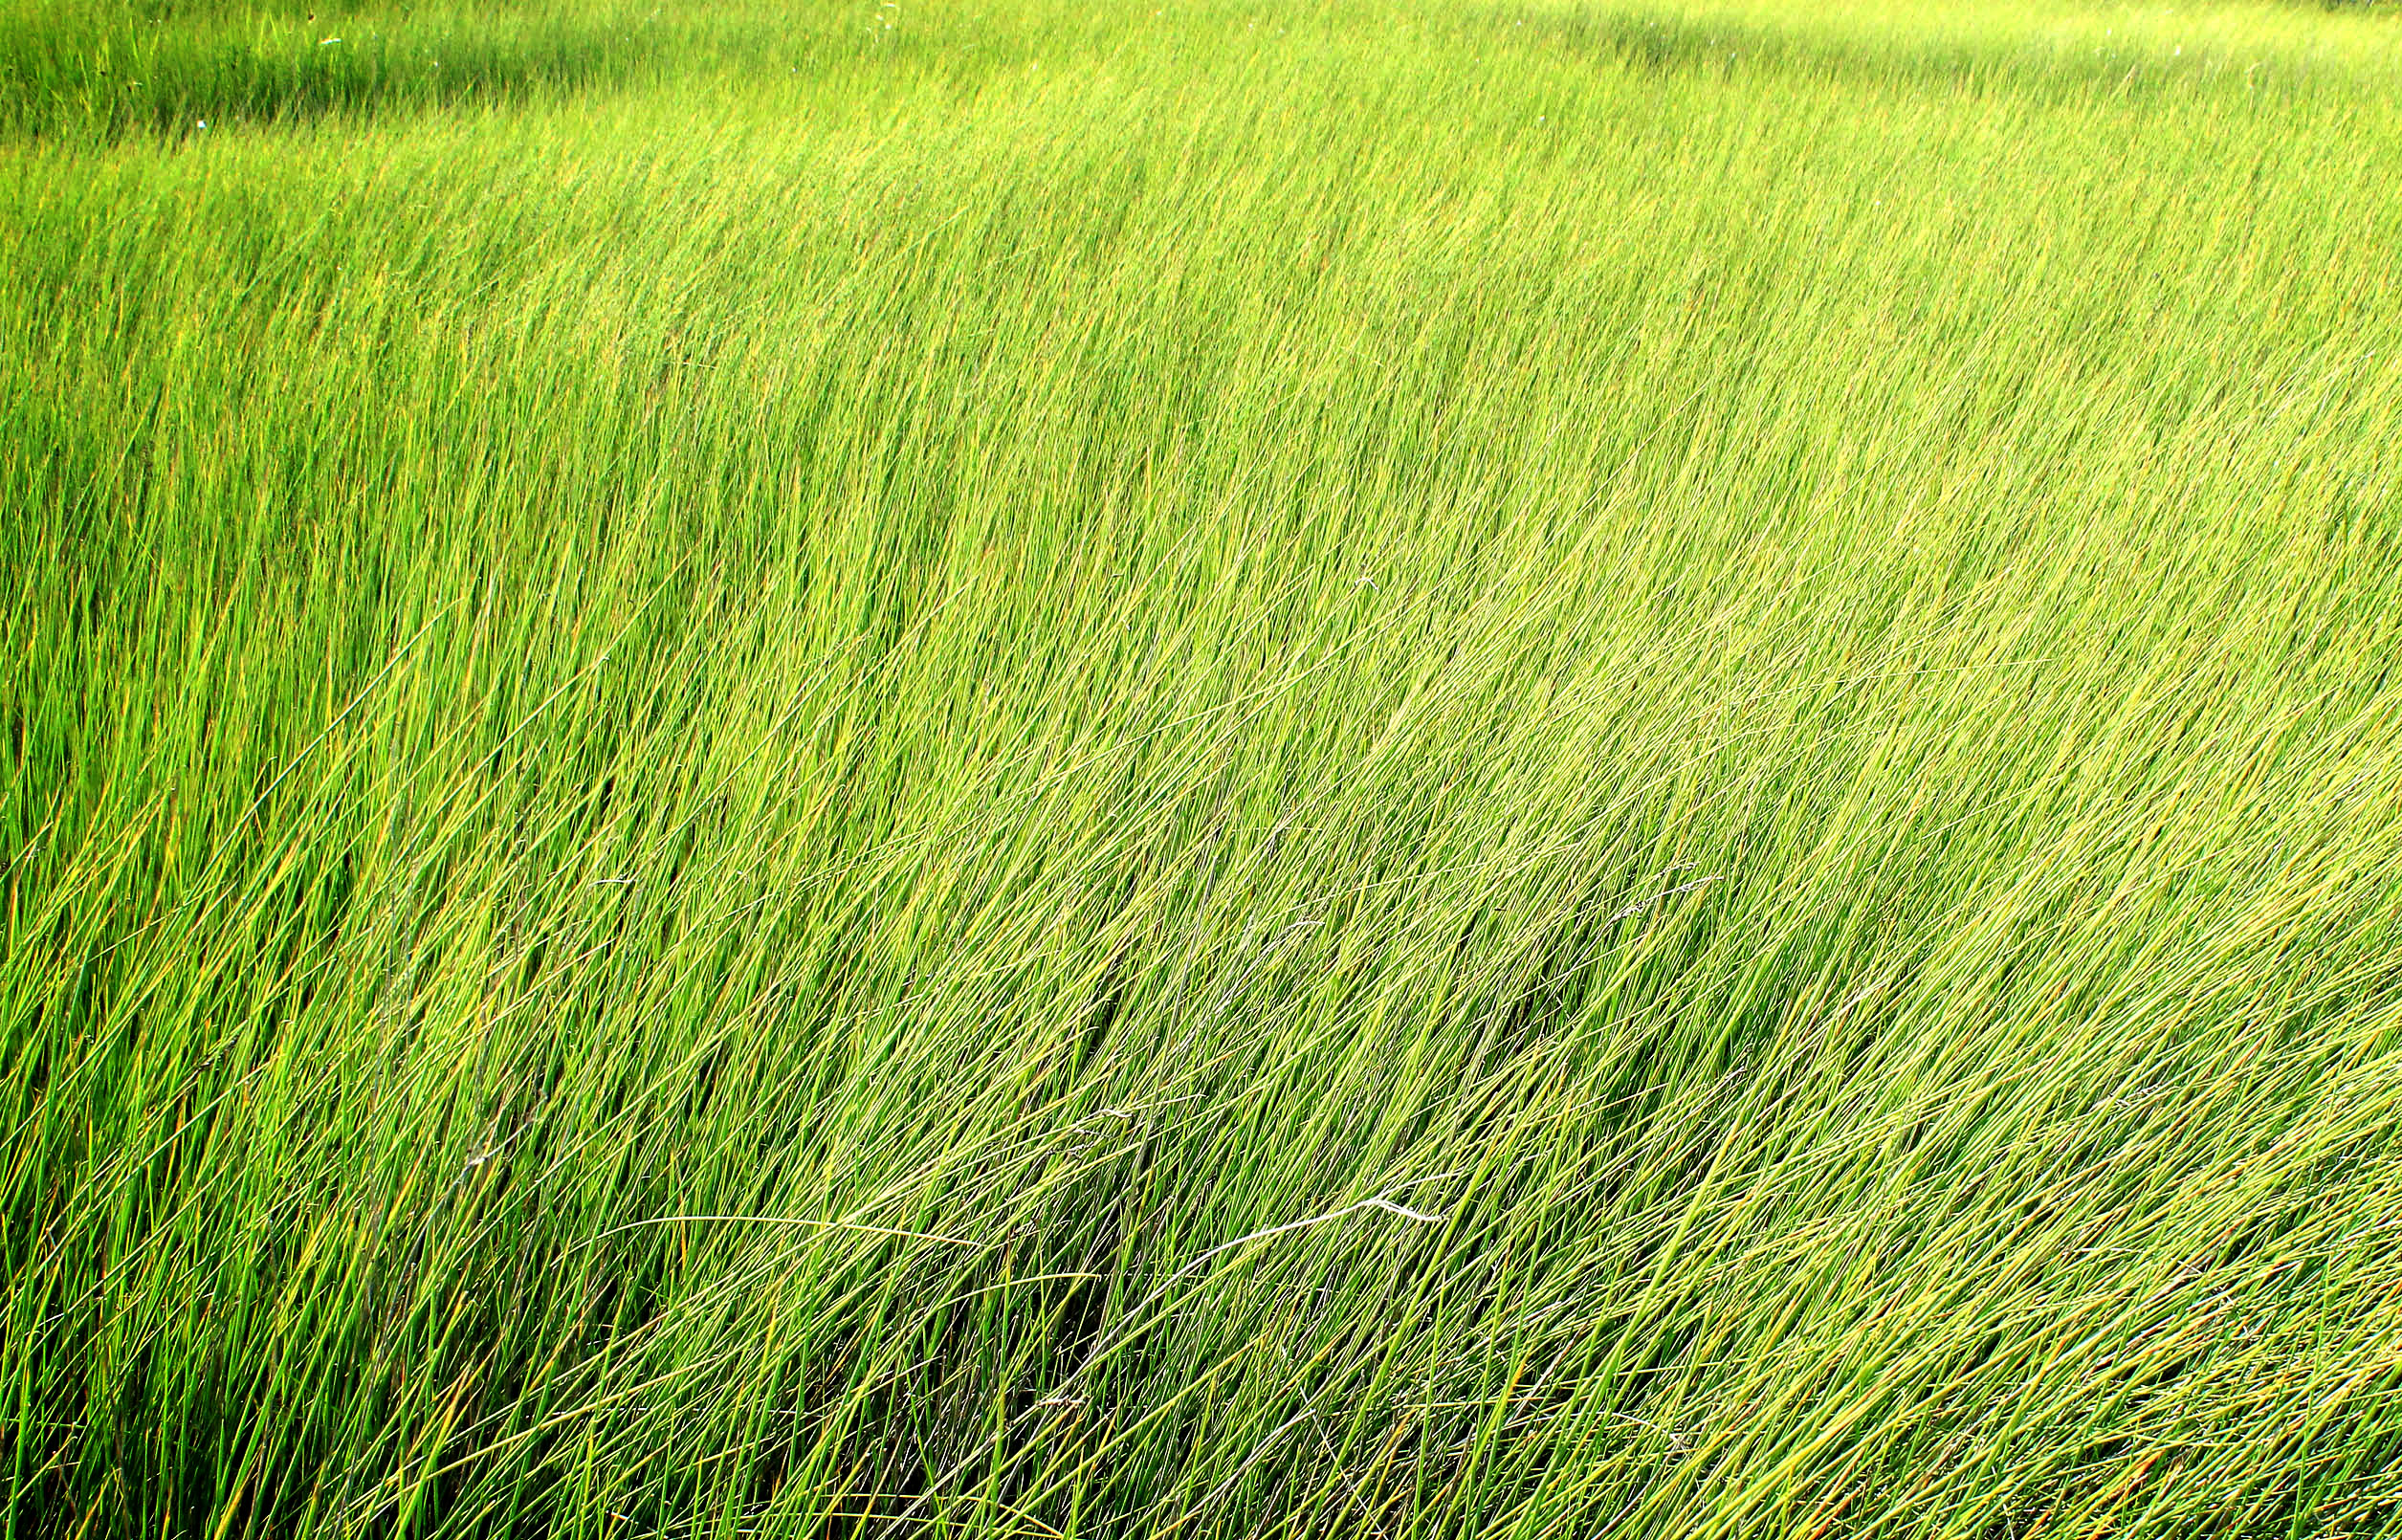 Tall grass - Texture, Abstract, Area, Summer, Spring, HQ Photo